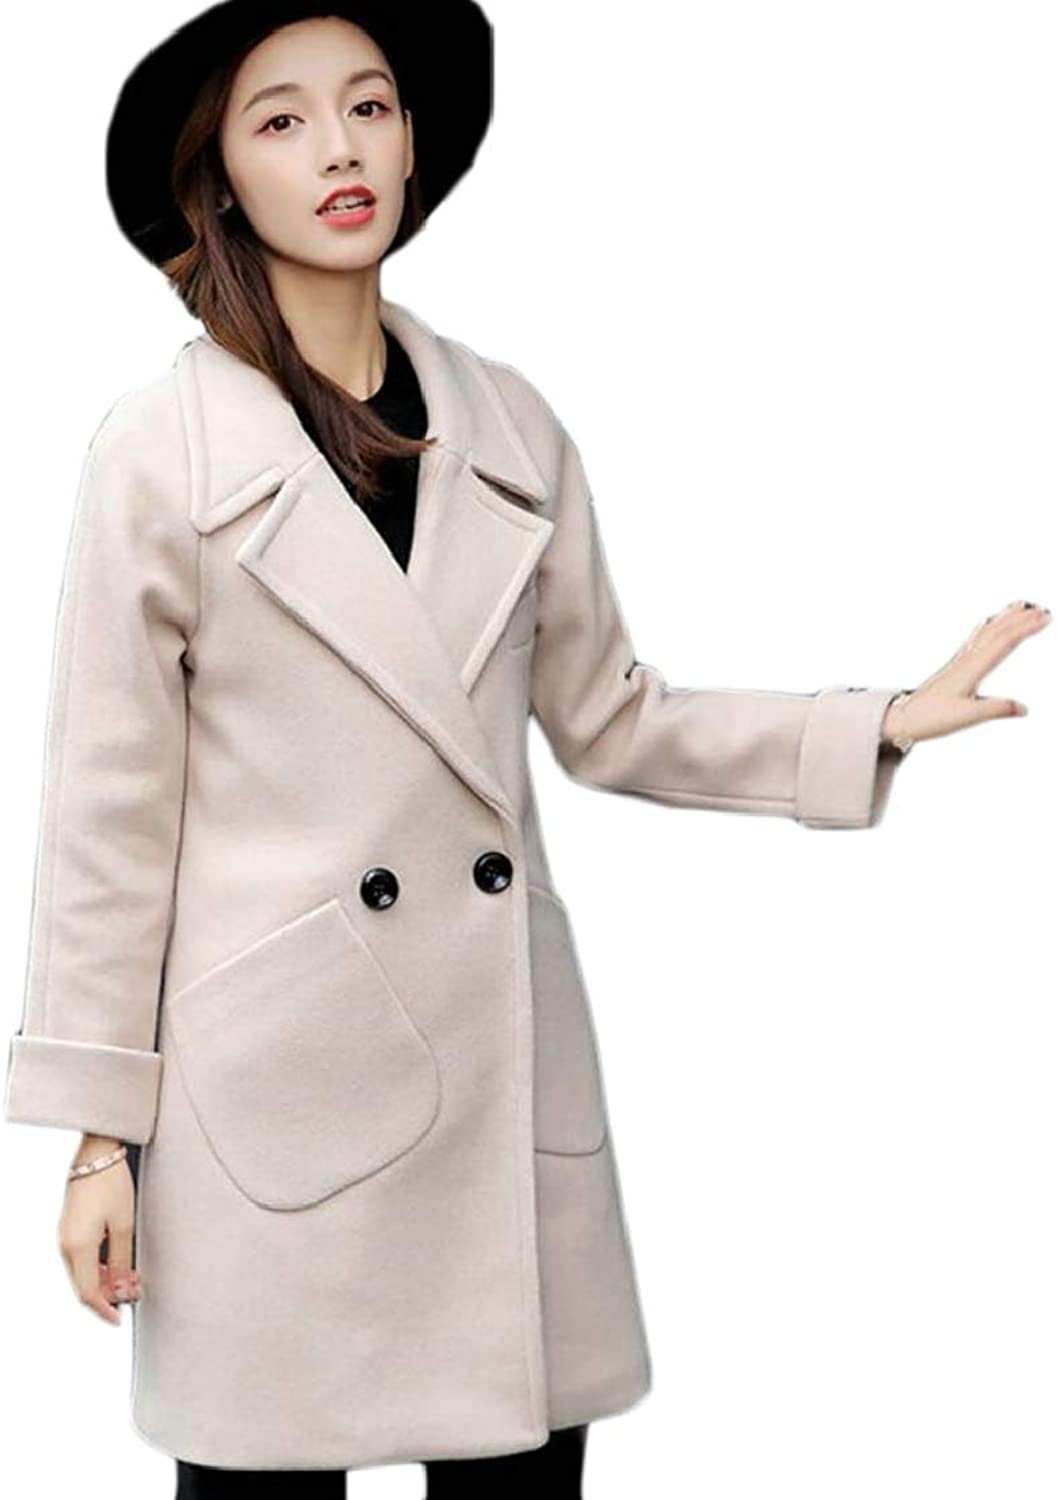 LEISHOP Women's Long Winter Lapel Trench Coats Double Breasted Wool Peacoat